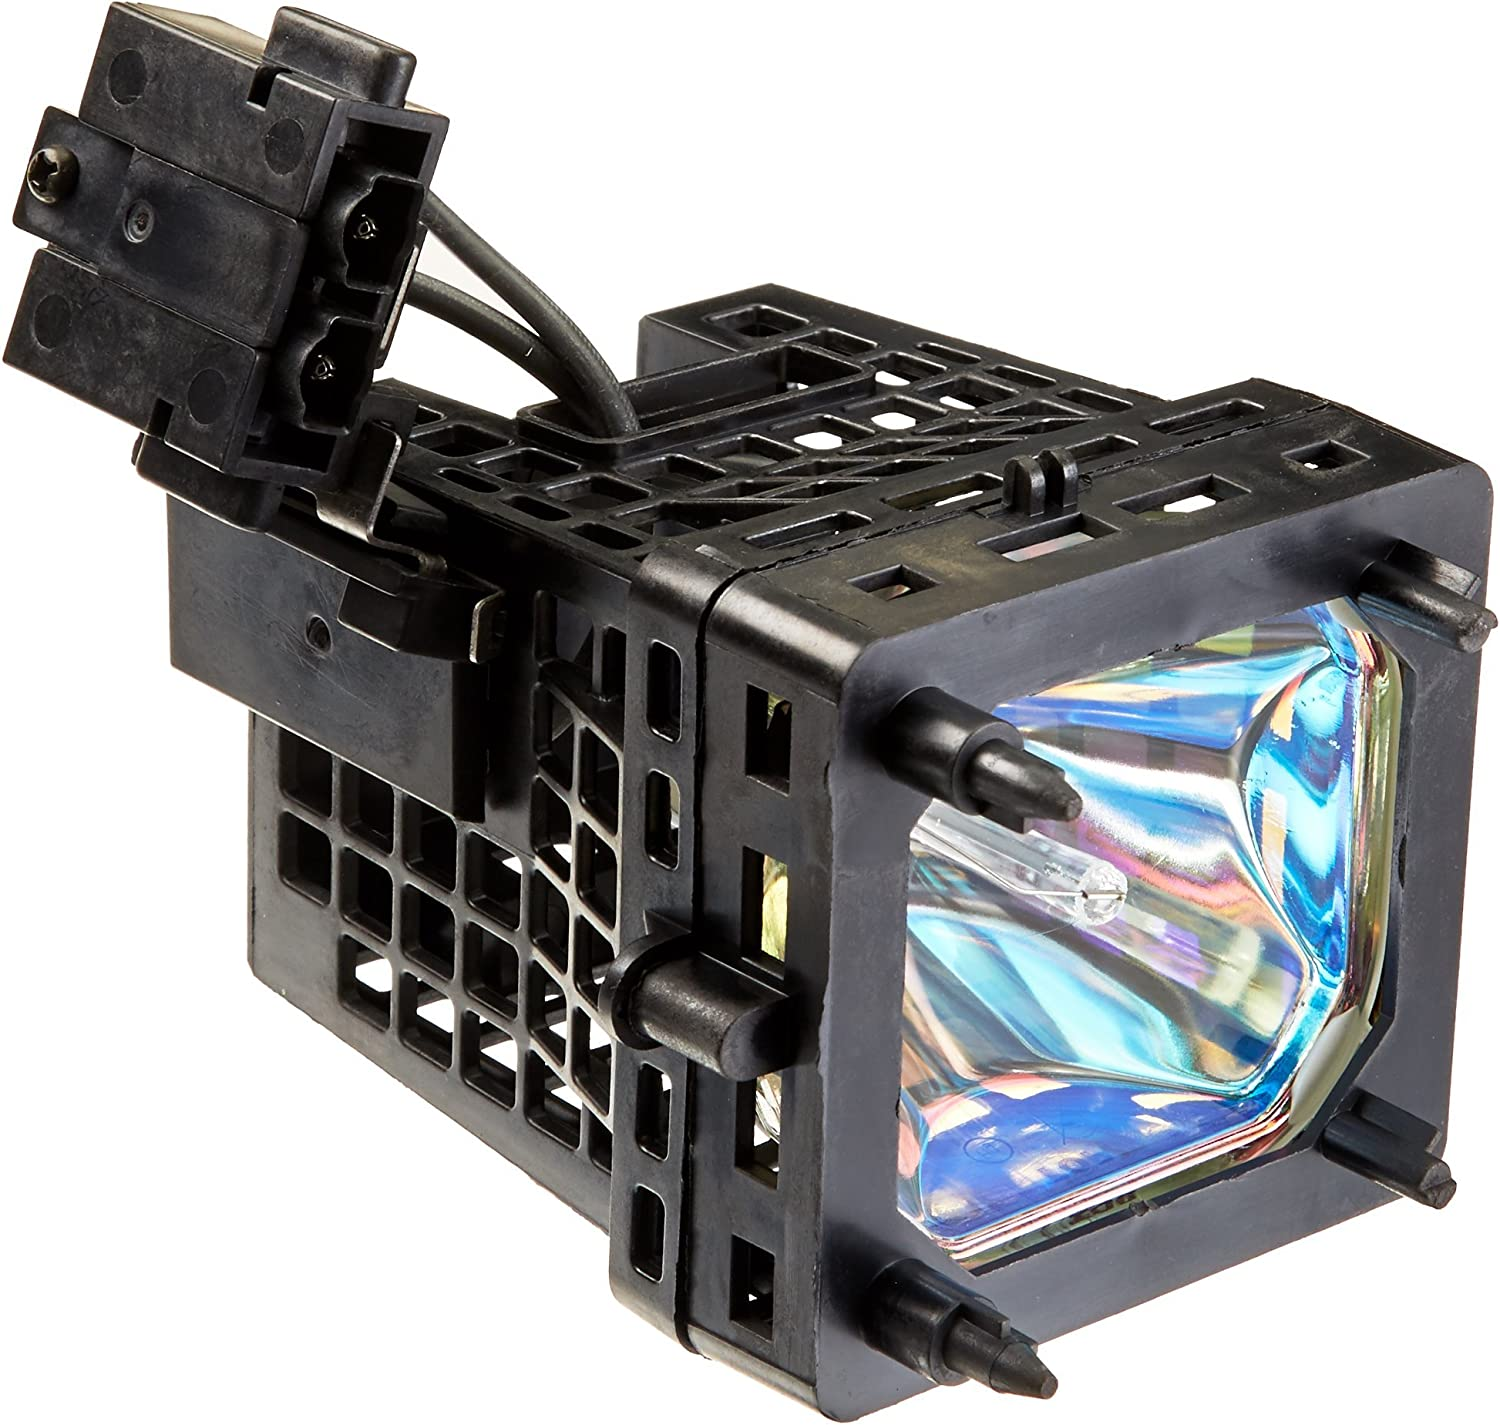 KDS-55A3000 KDS55A3000 XL-5200 XL5200 Replacement Sony TV Lamp